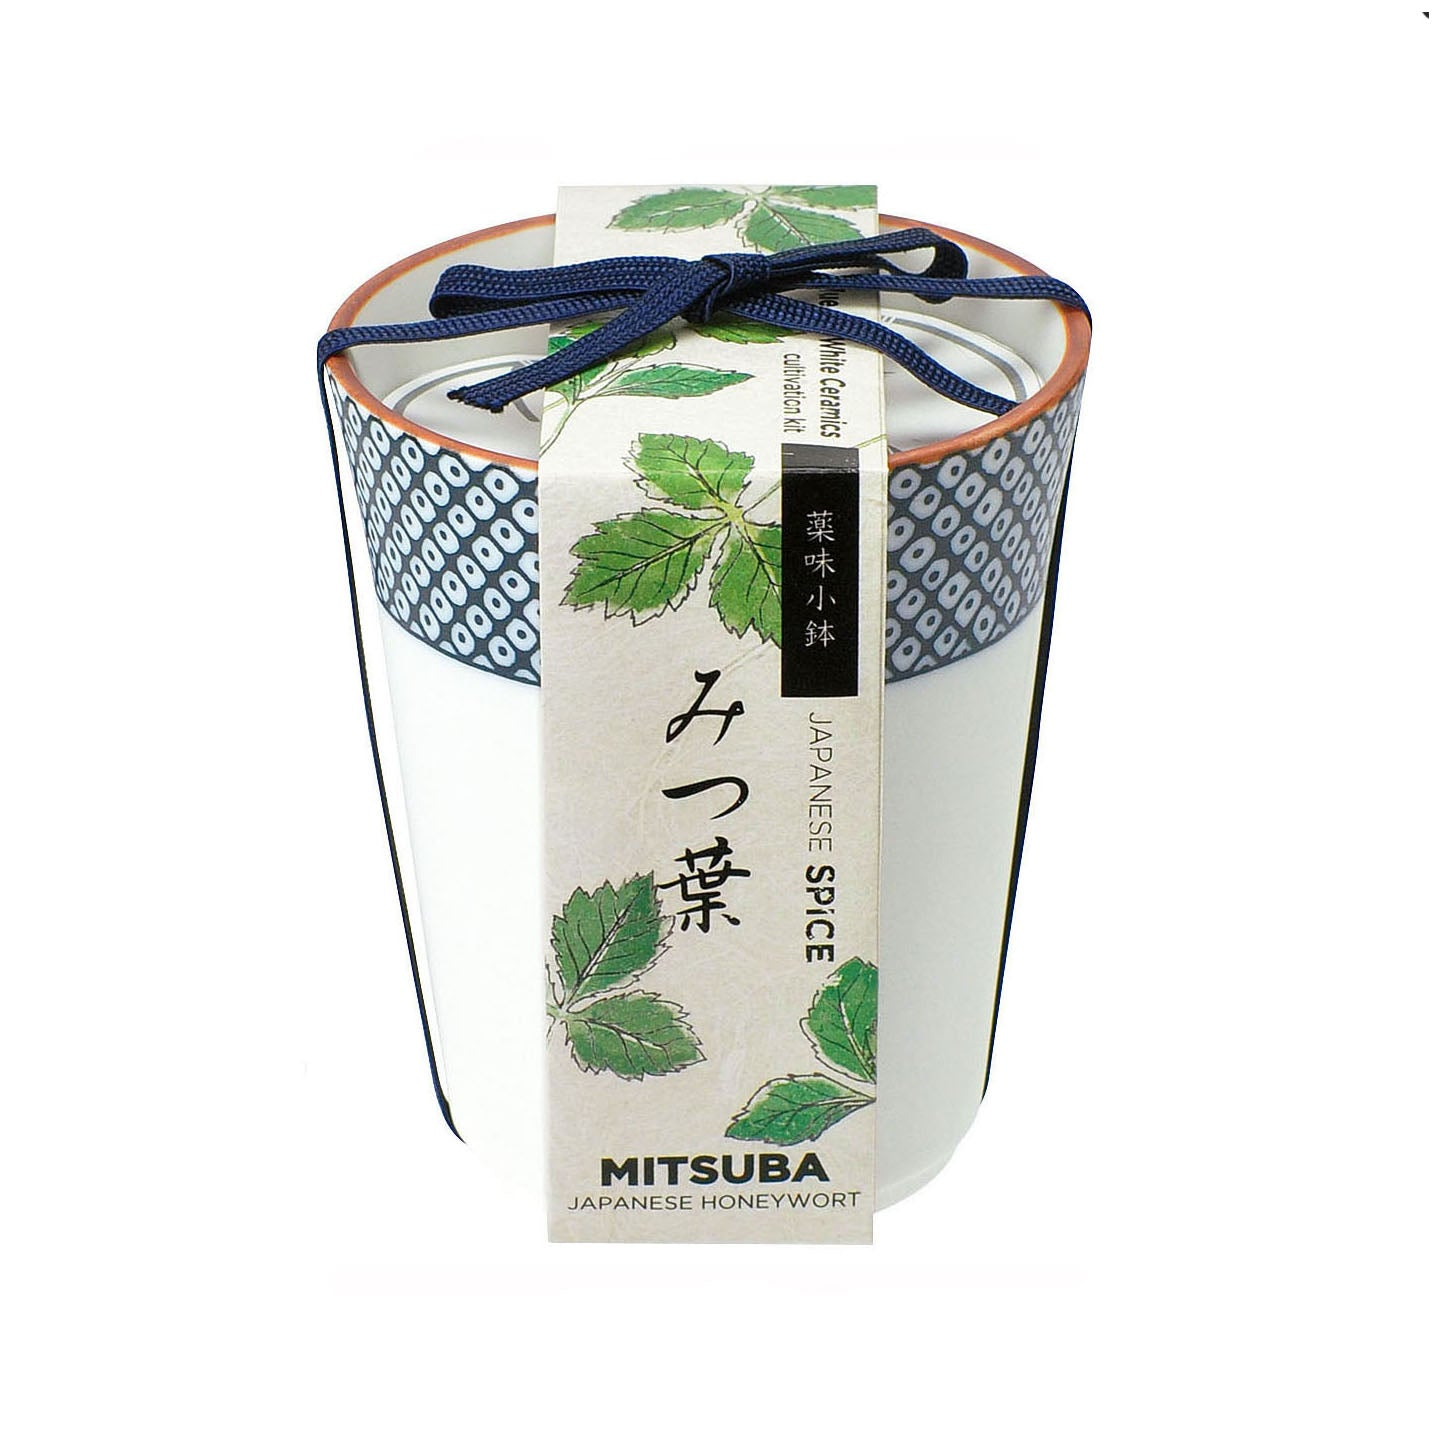 Grow Your Own Japanese Herbs Kit in a Ceramic Pot - Mitsuba(Japanese Parsley)